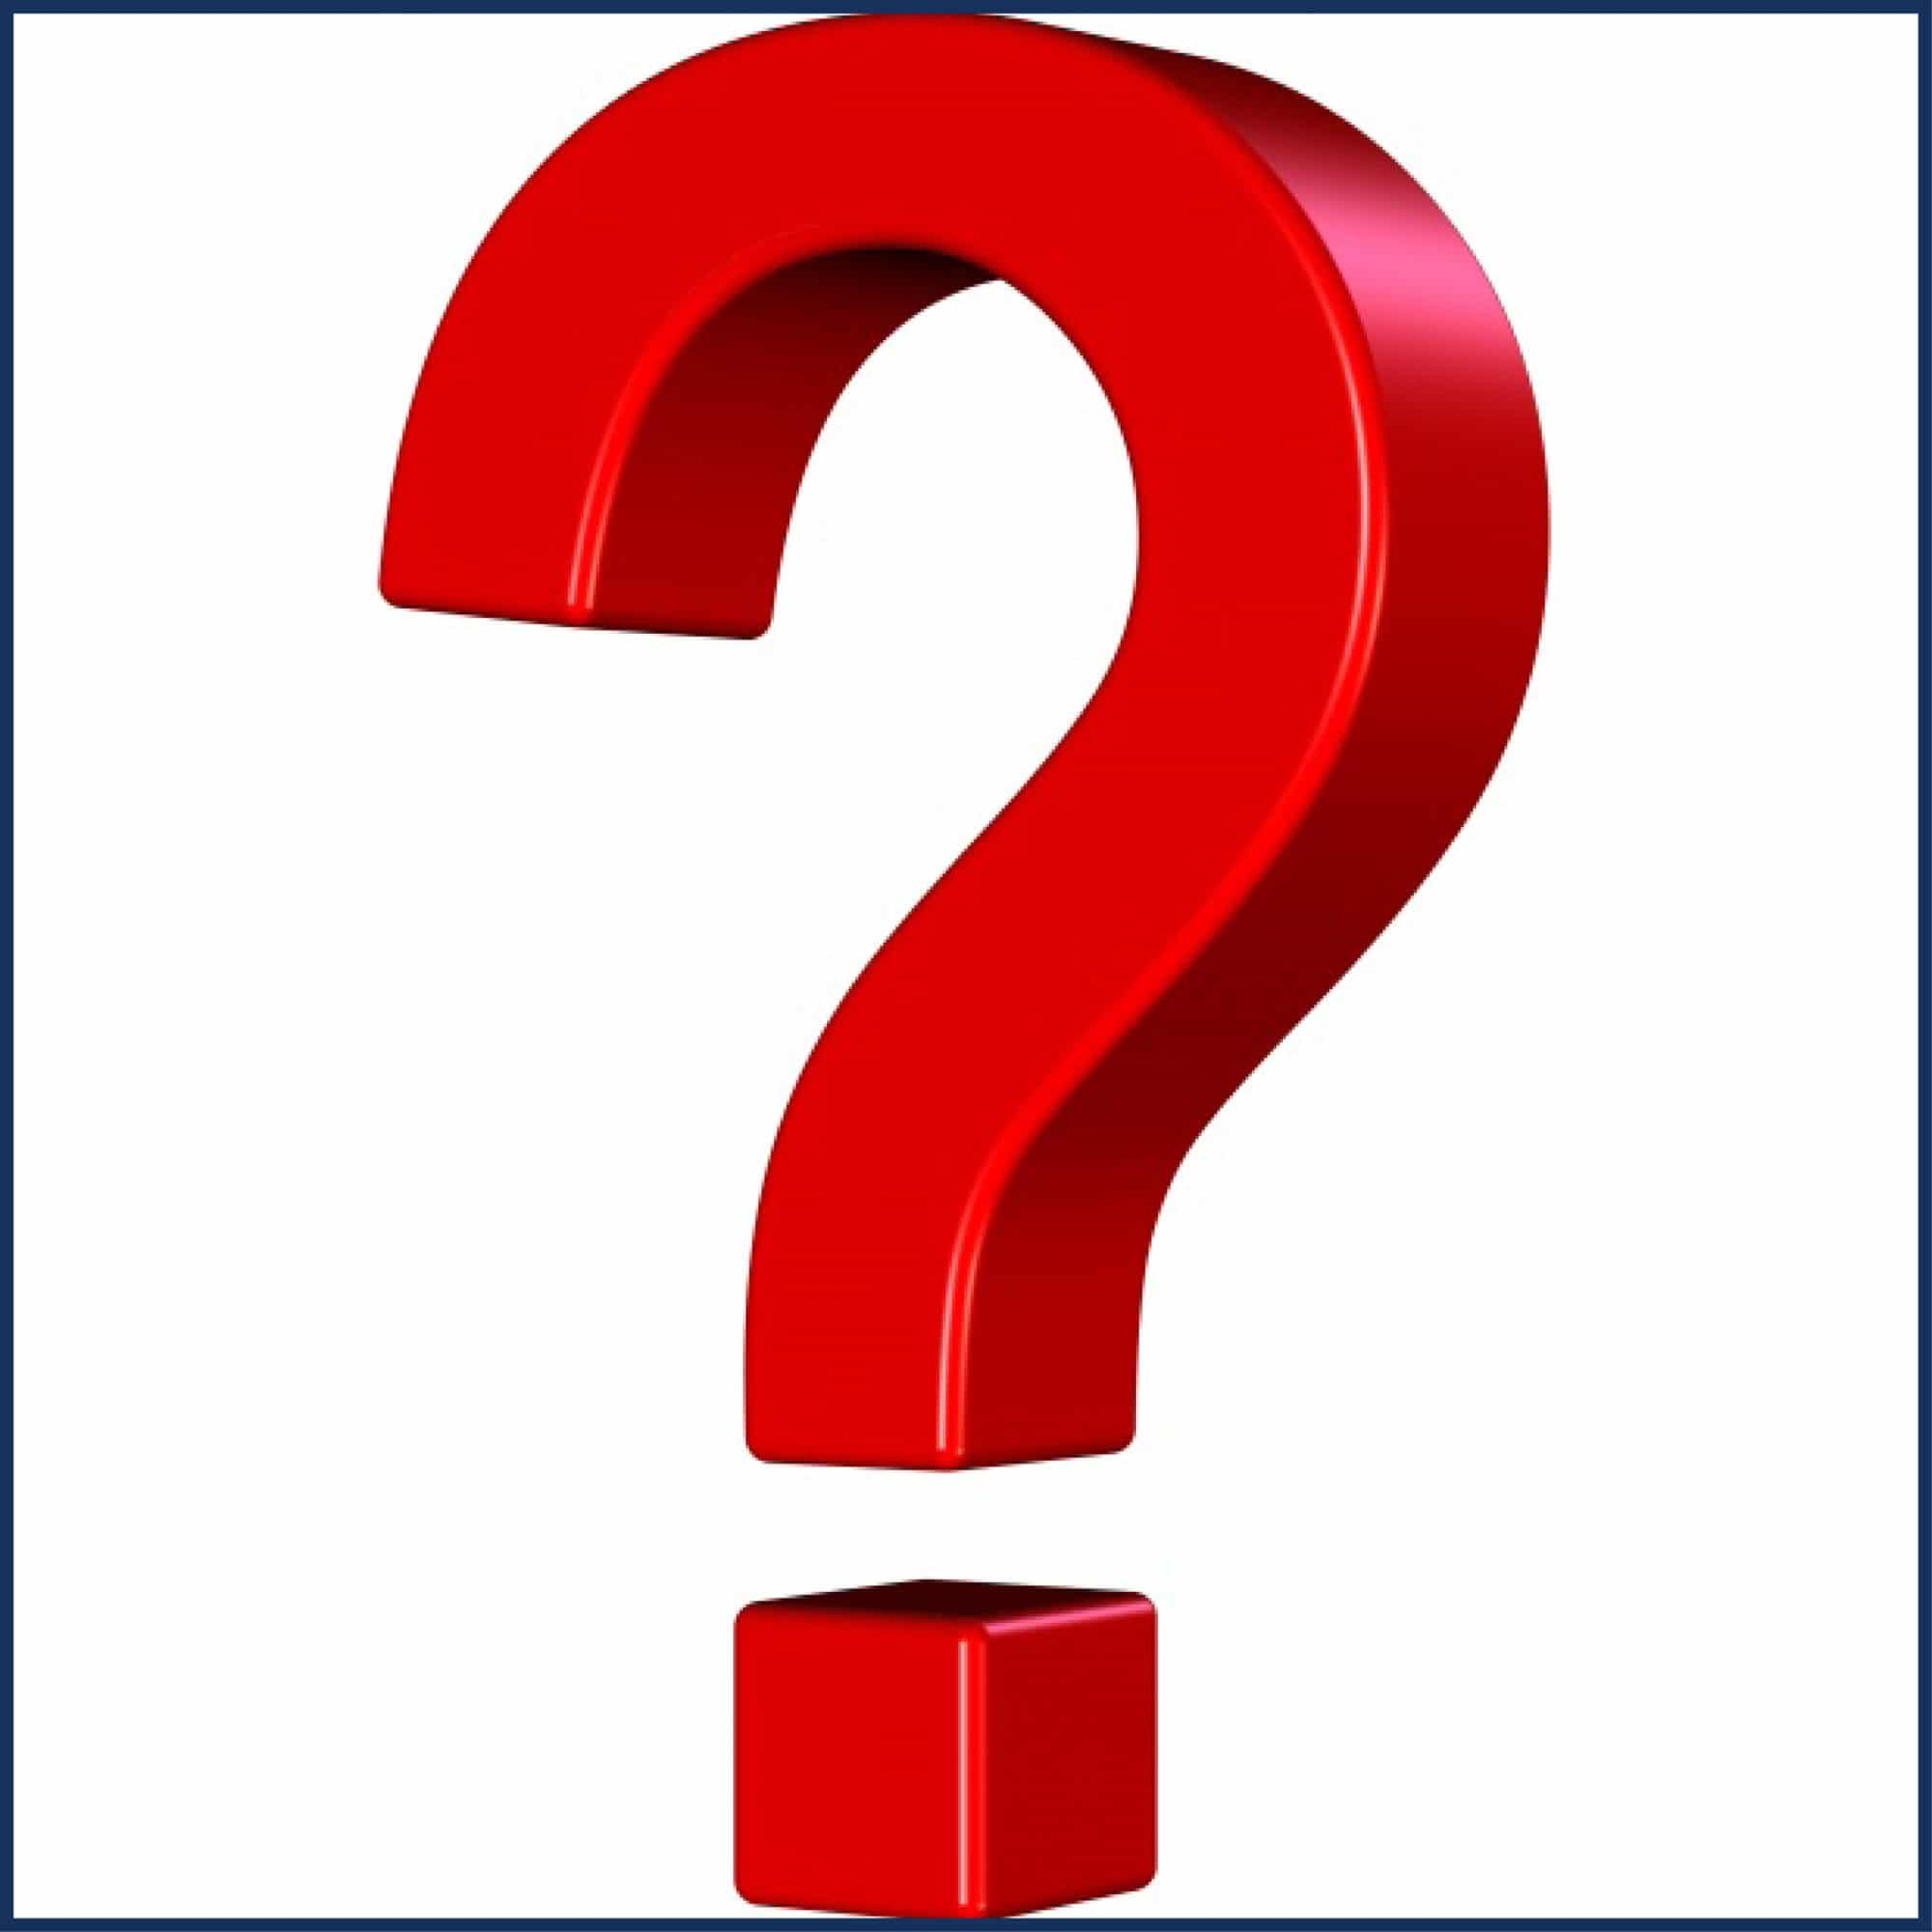 Image shows a red question mark